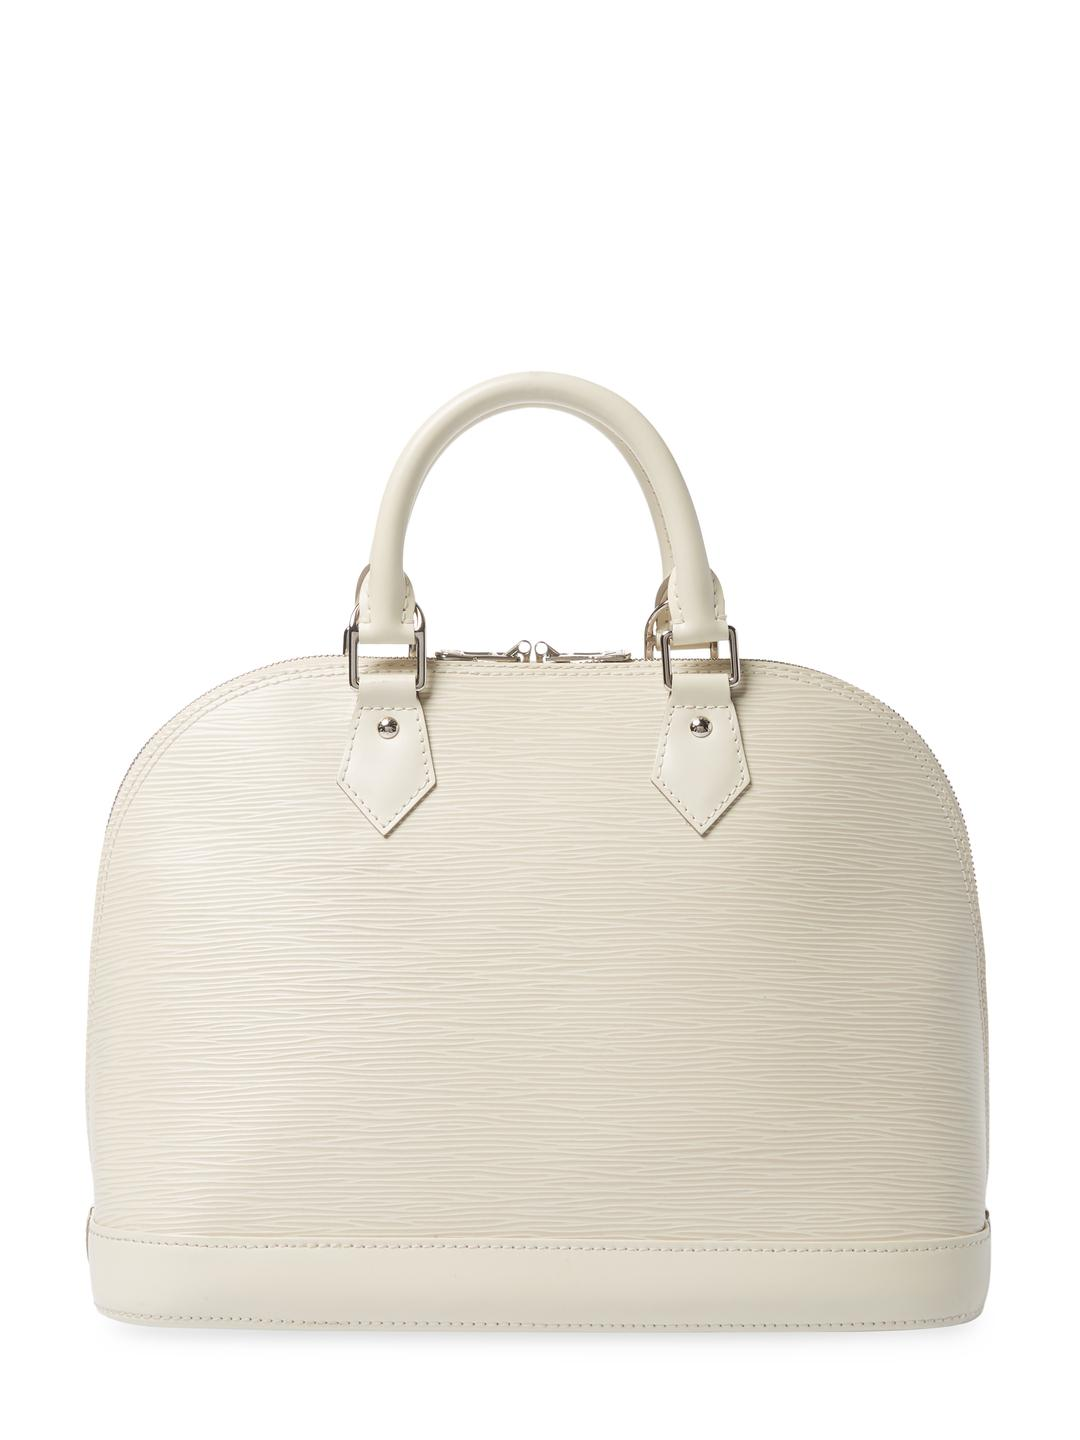 Lyst - Louis Vuitton Vintage White Epi Ab Alma Pm Bag in White 48b539f8e7